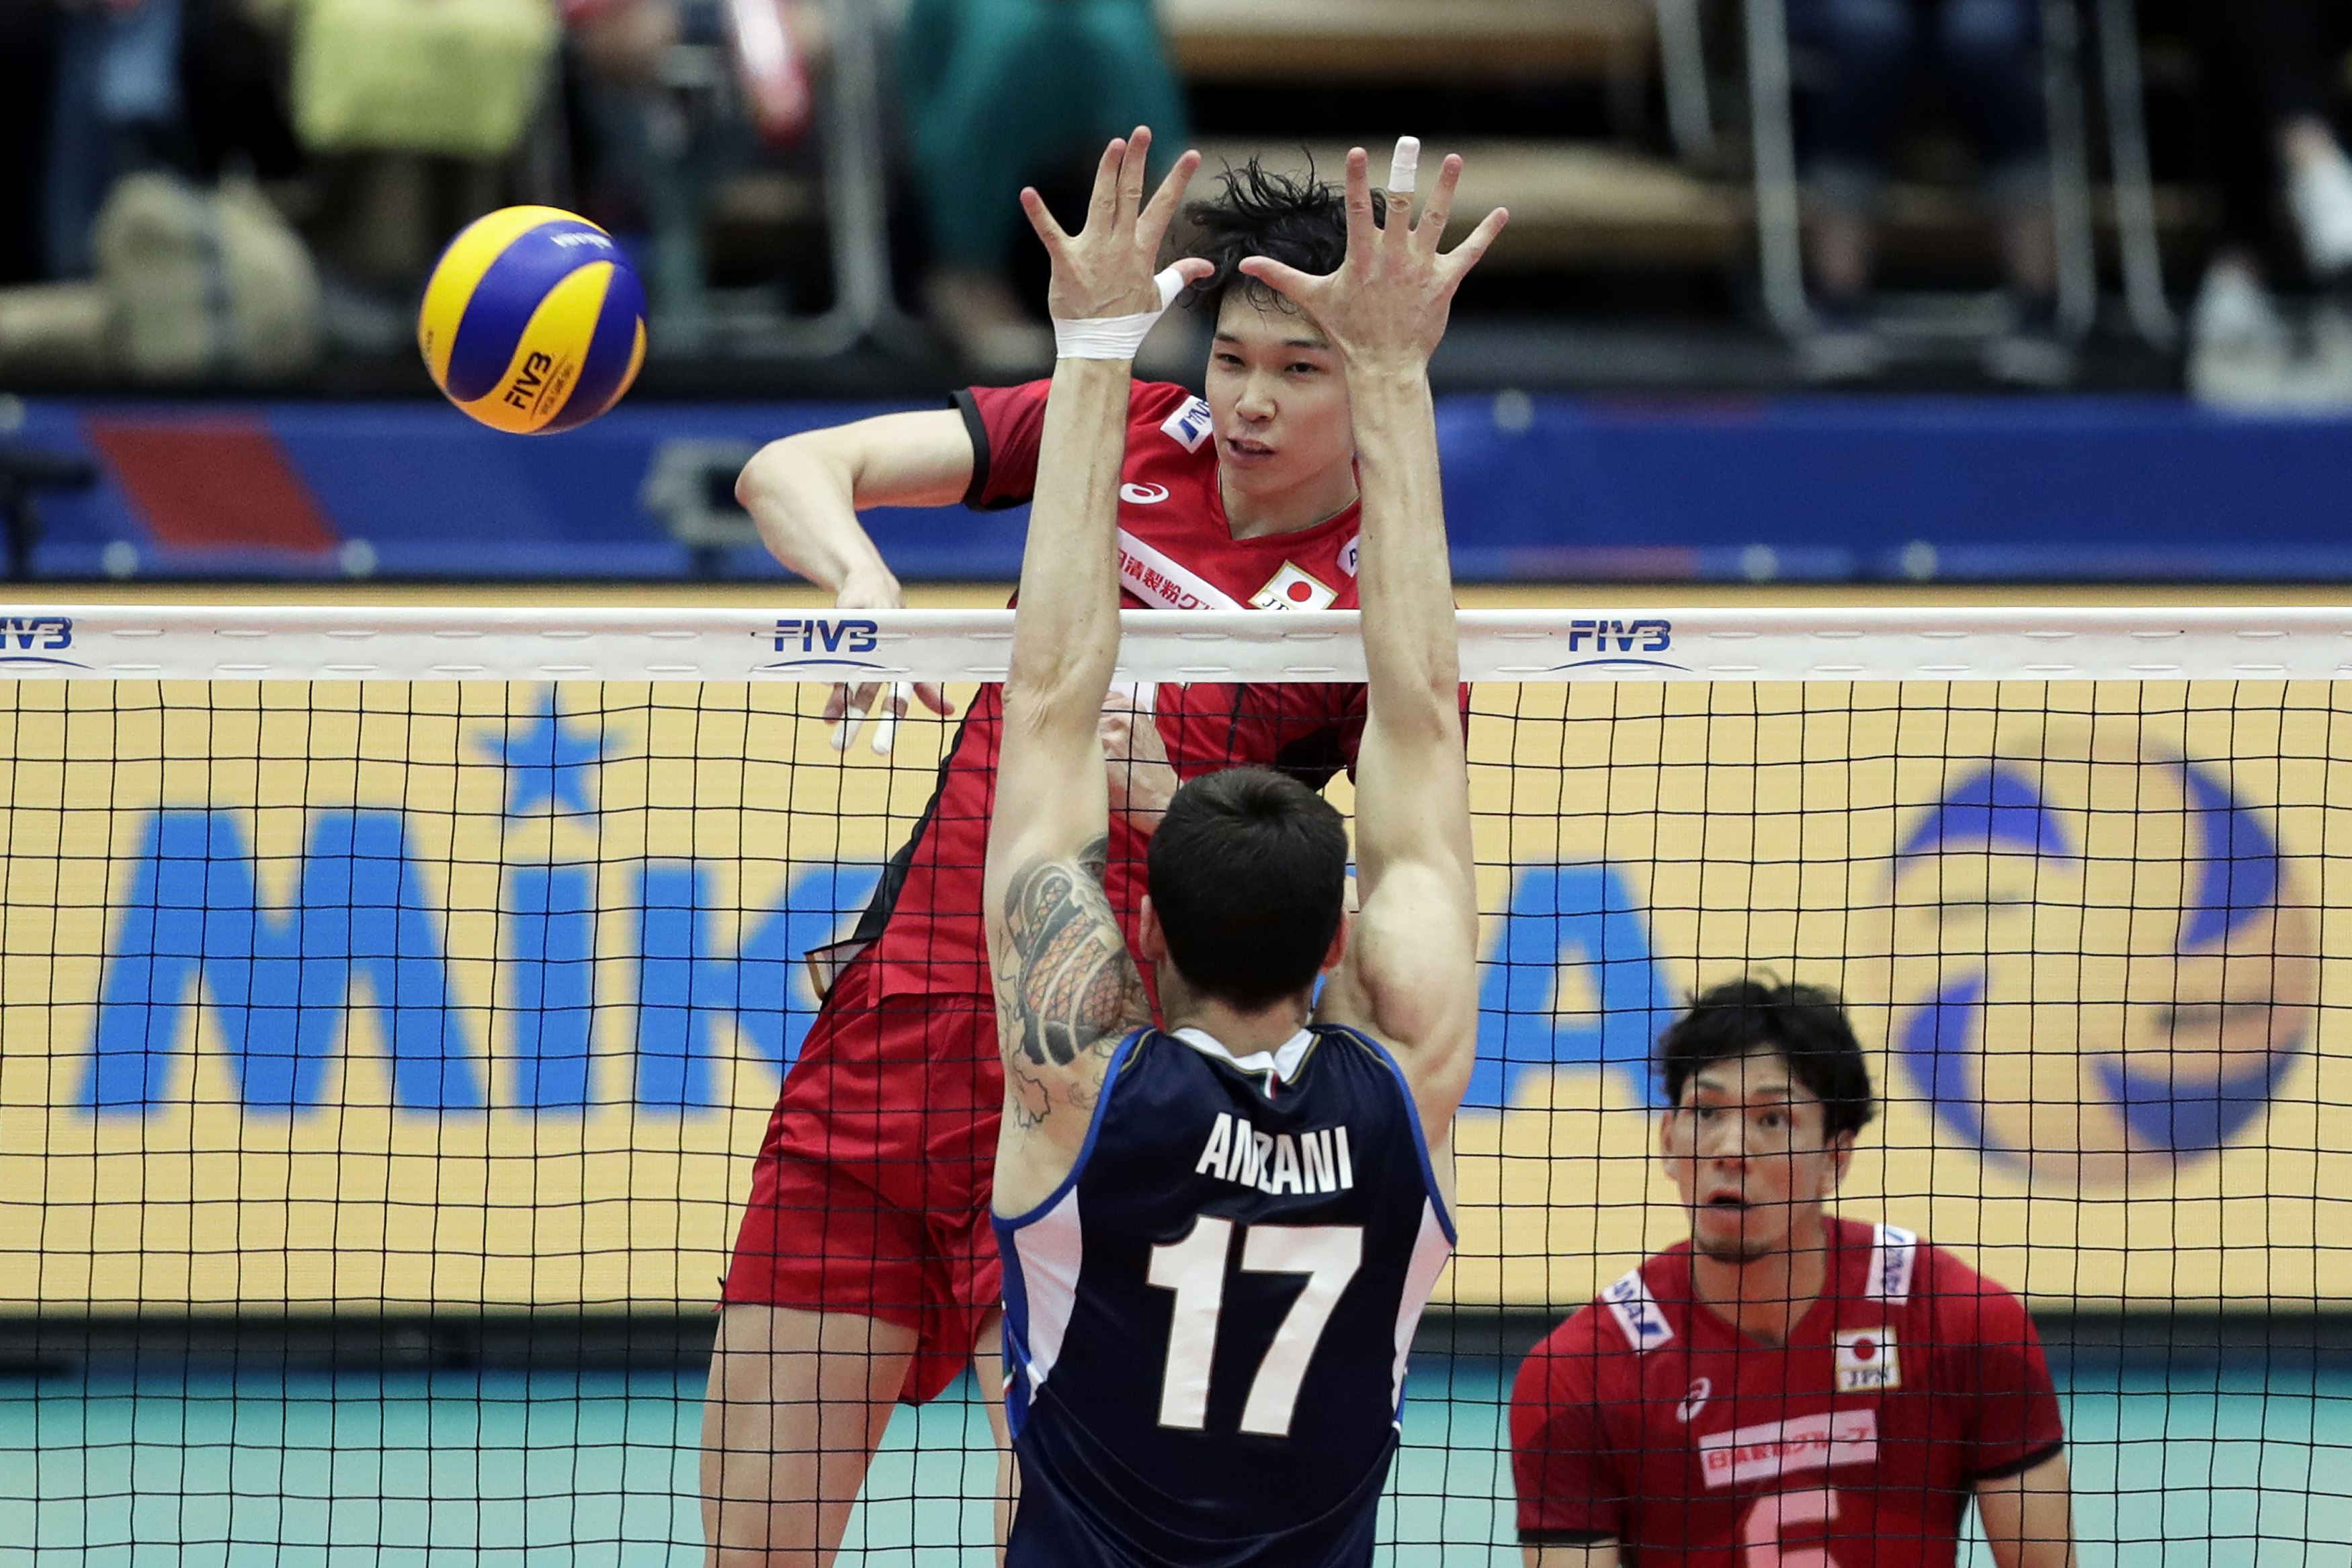 Vnl2018 News Detail Nishida On Fire In Japan S Thrilling Upset Over Italy Fivb Volleyball Nations League 2018